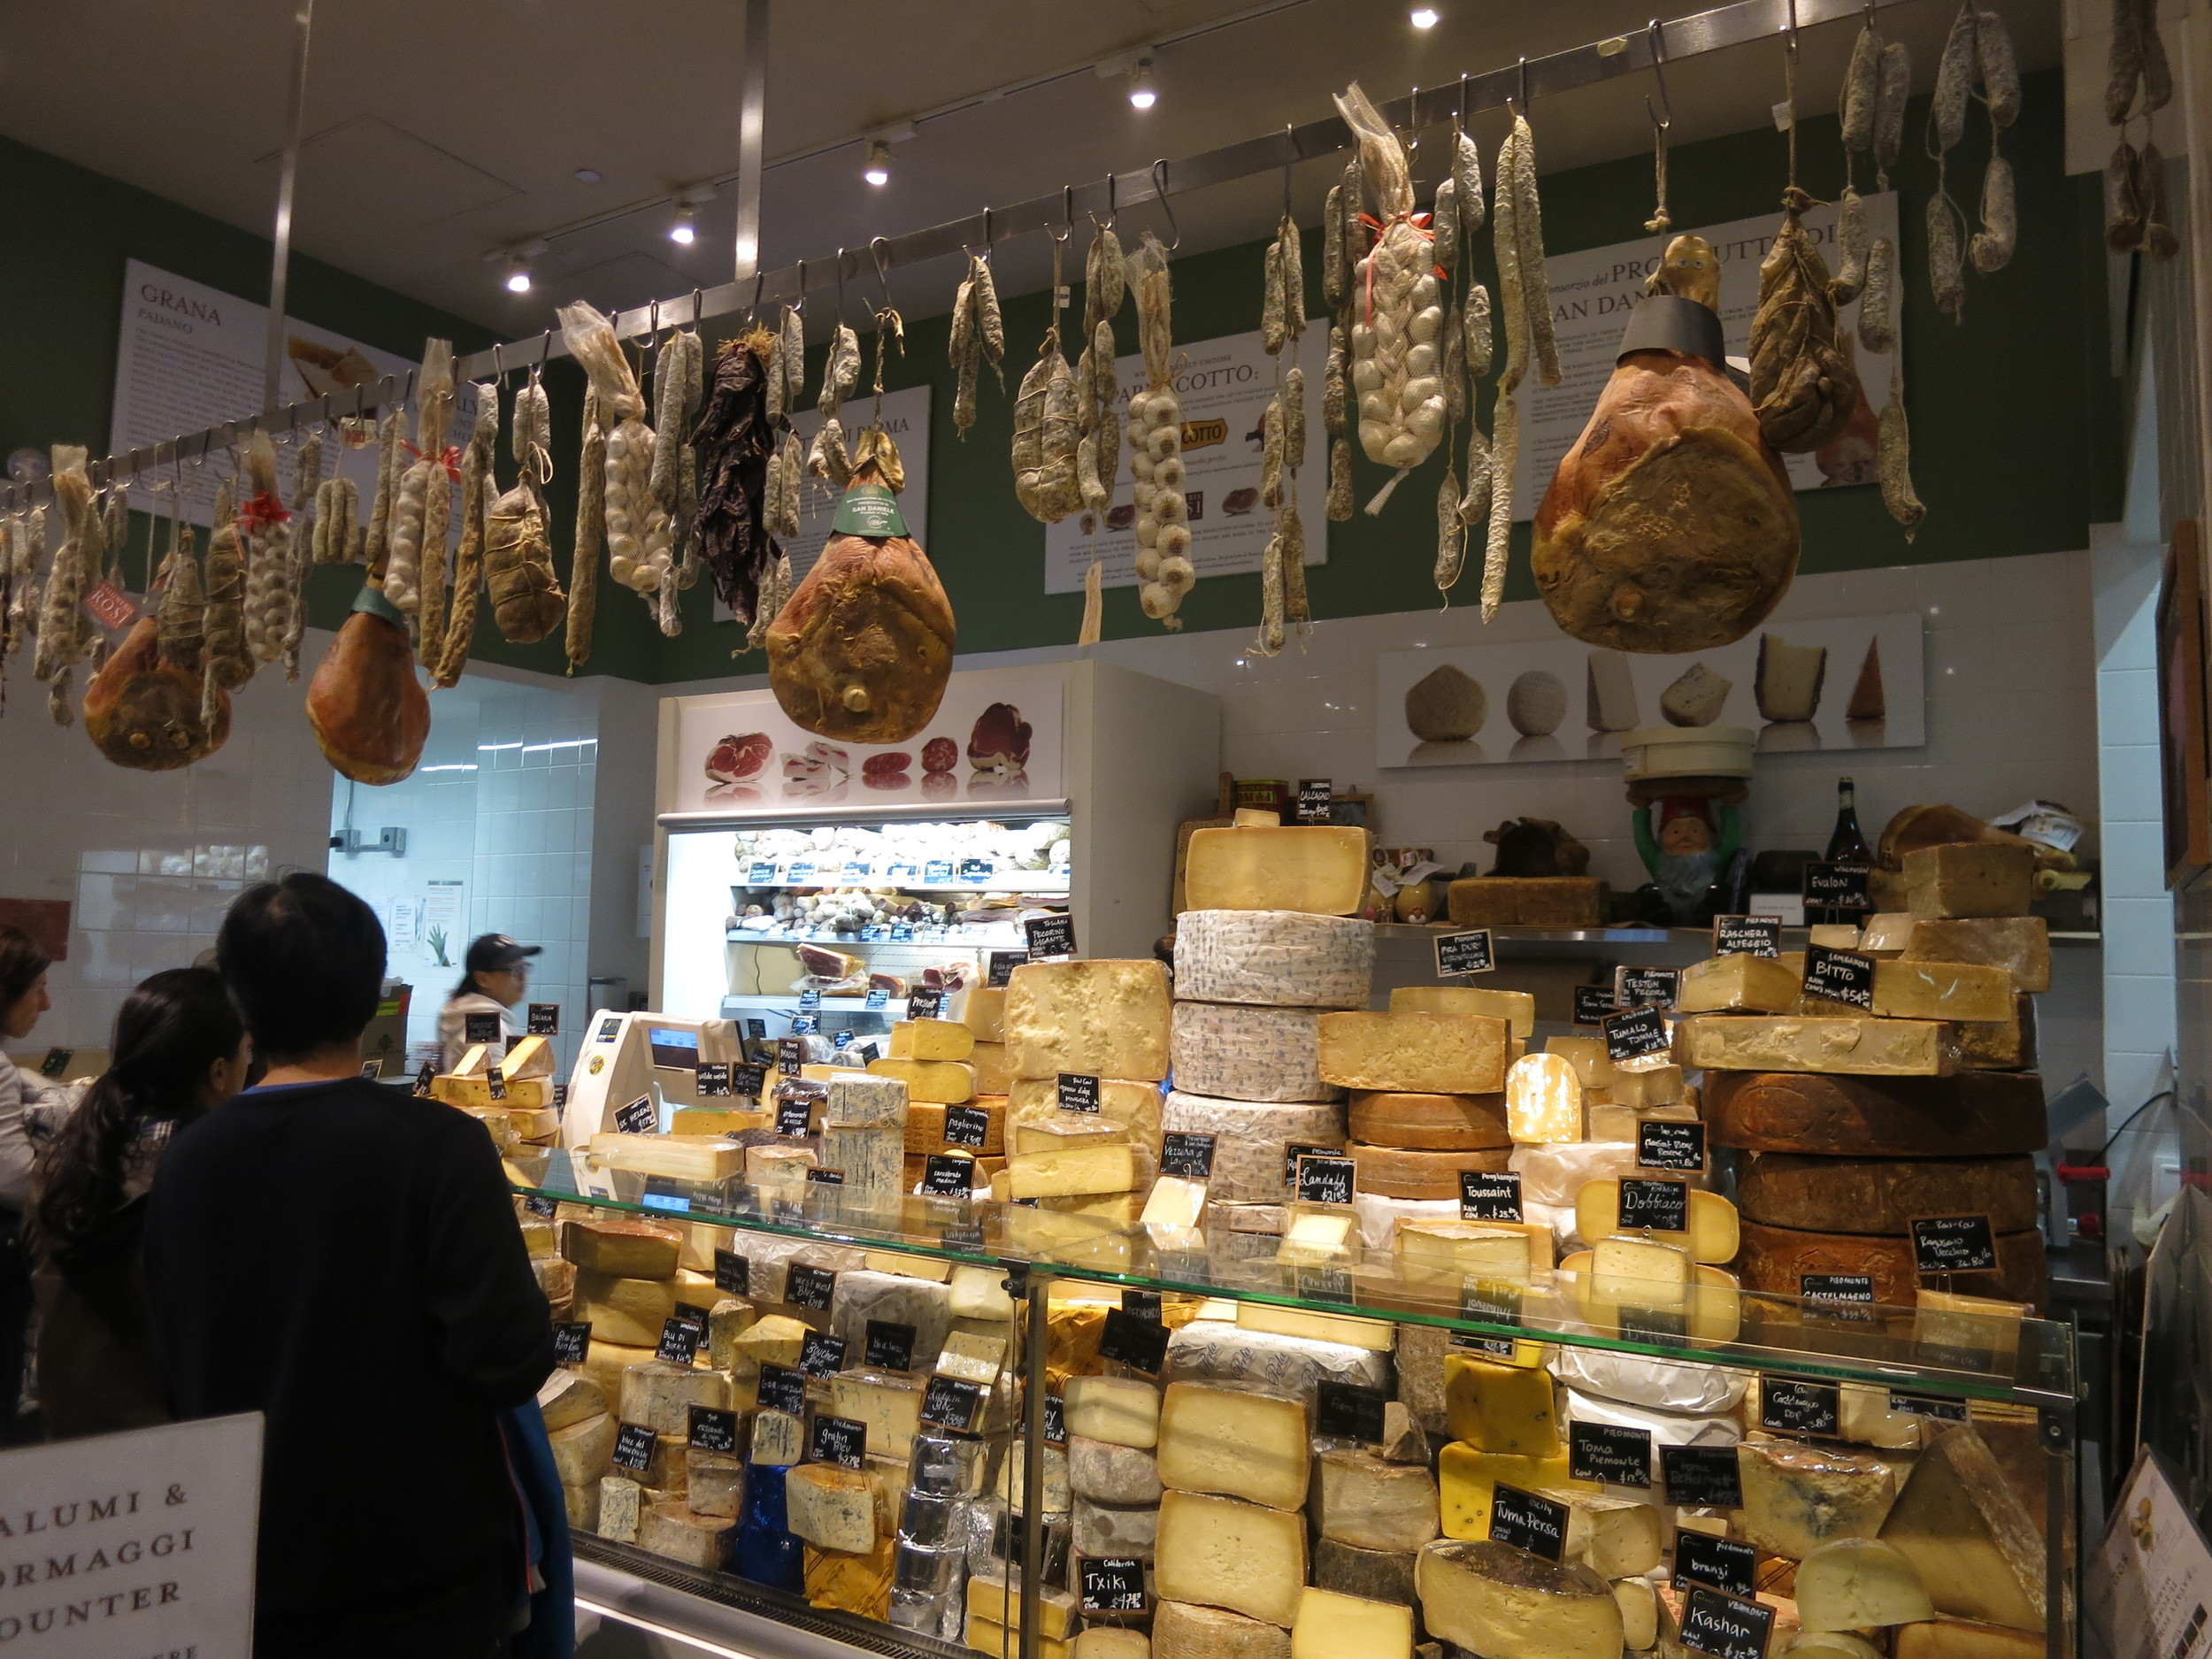 The Cheese Shop at Eataly - NYC